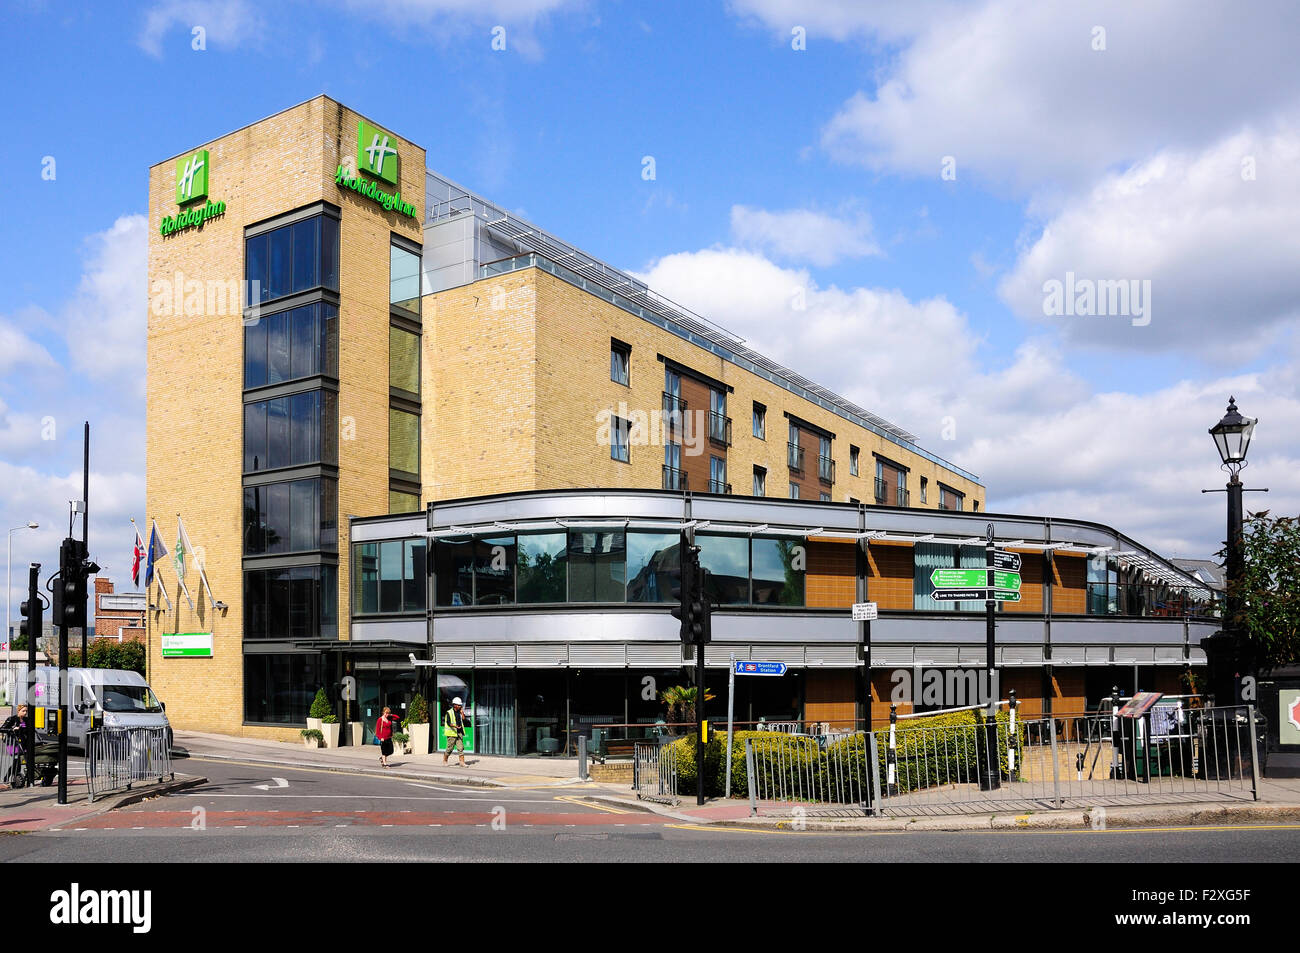 Holiday Inn Hotel, Brentford Lock, Brentford, London Borough of Hounslow, Greater London, England, United Kingdom - Stock Image